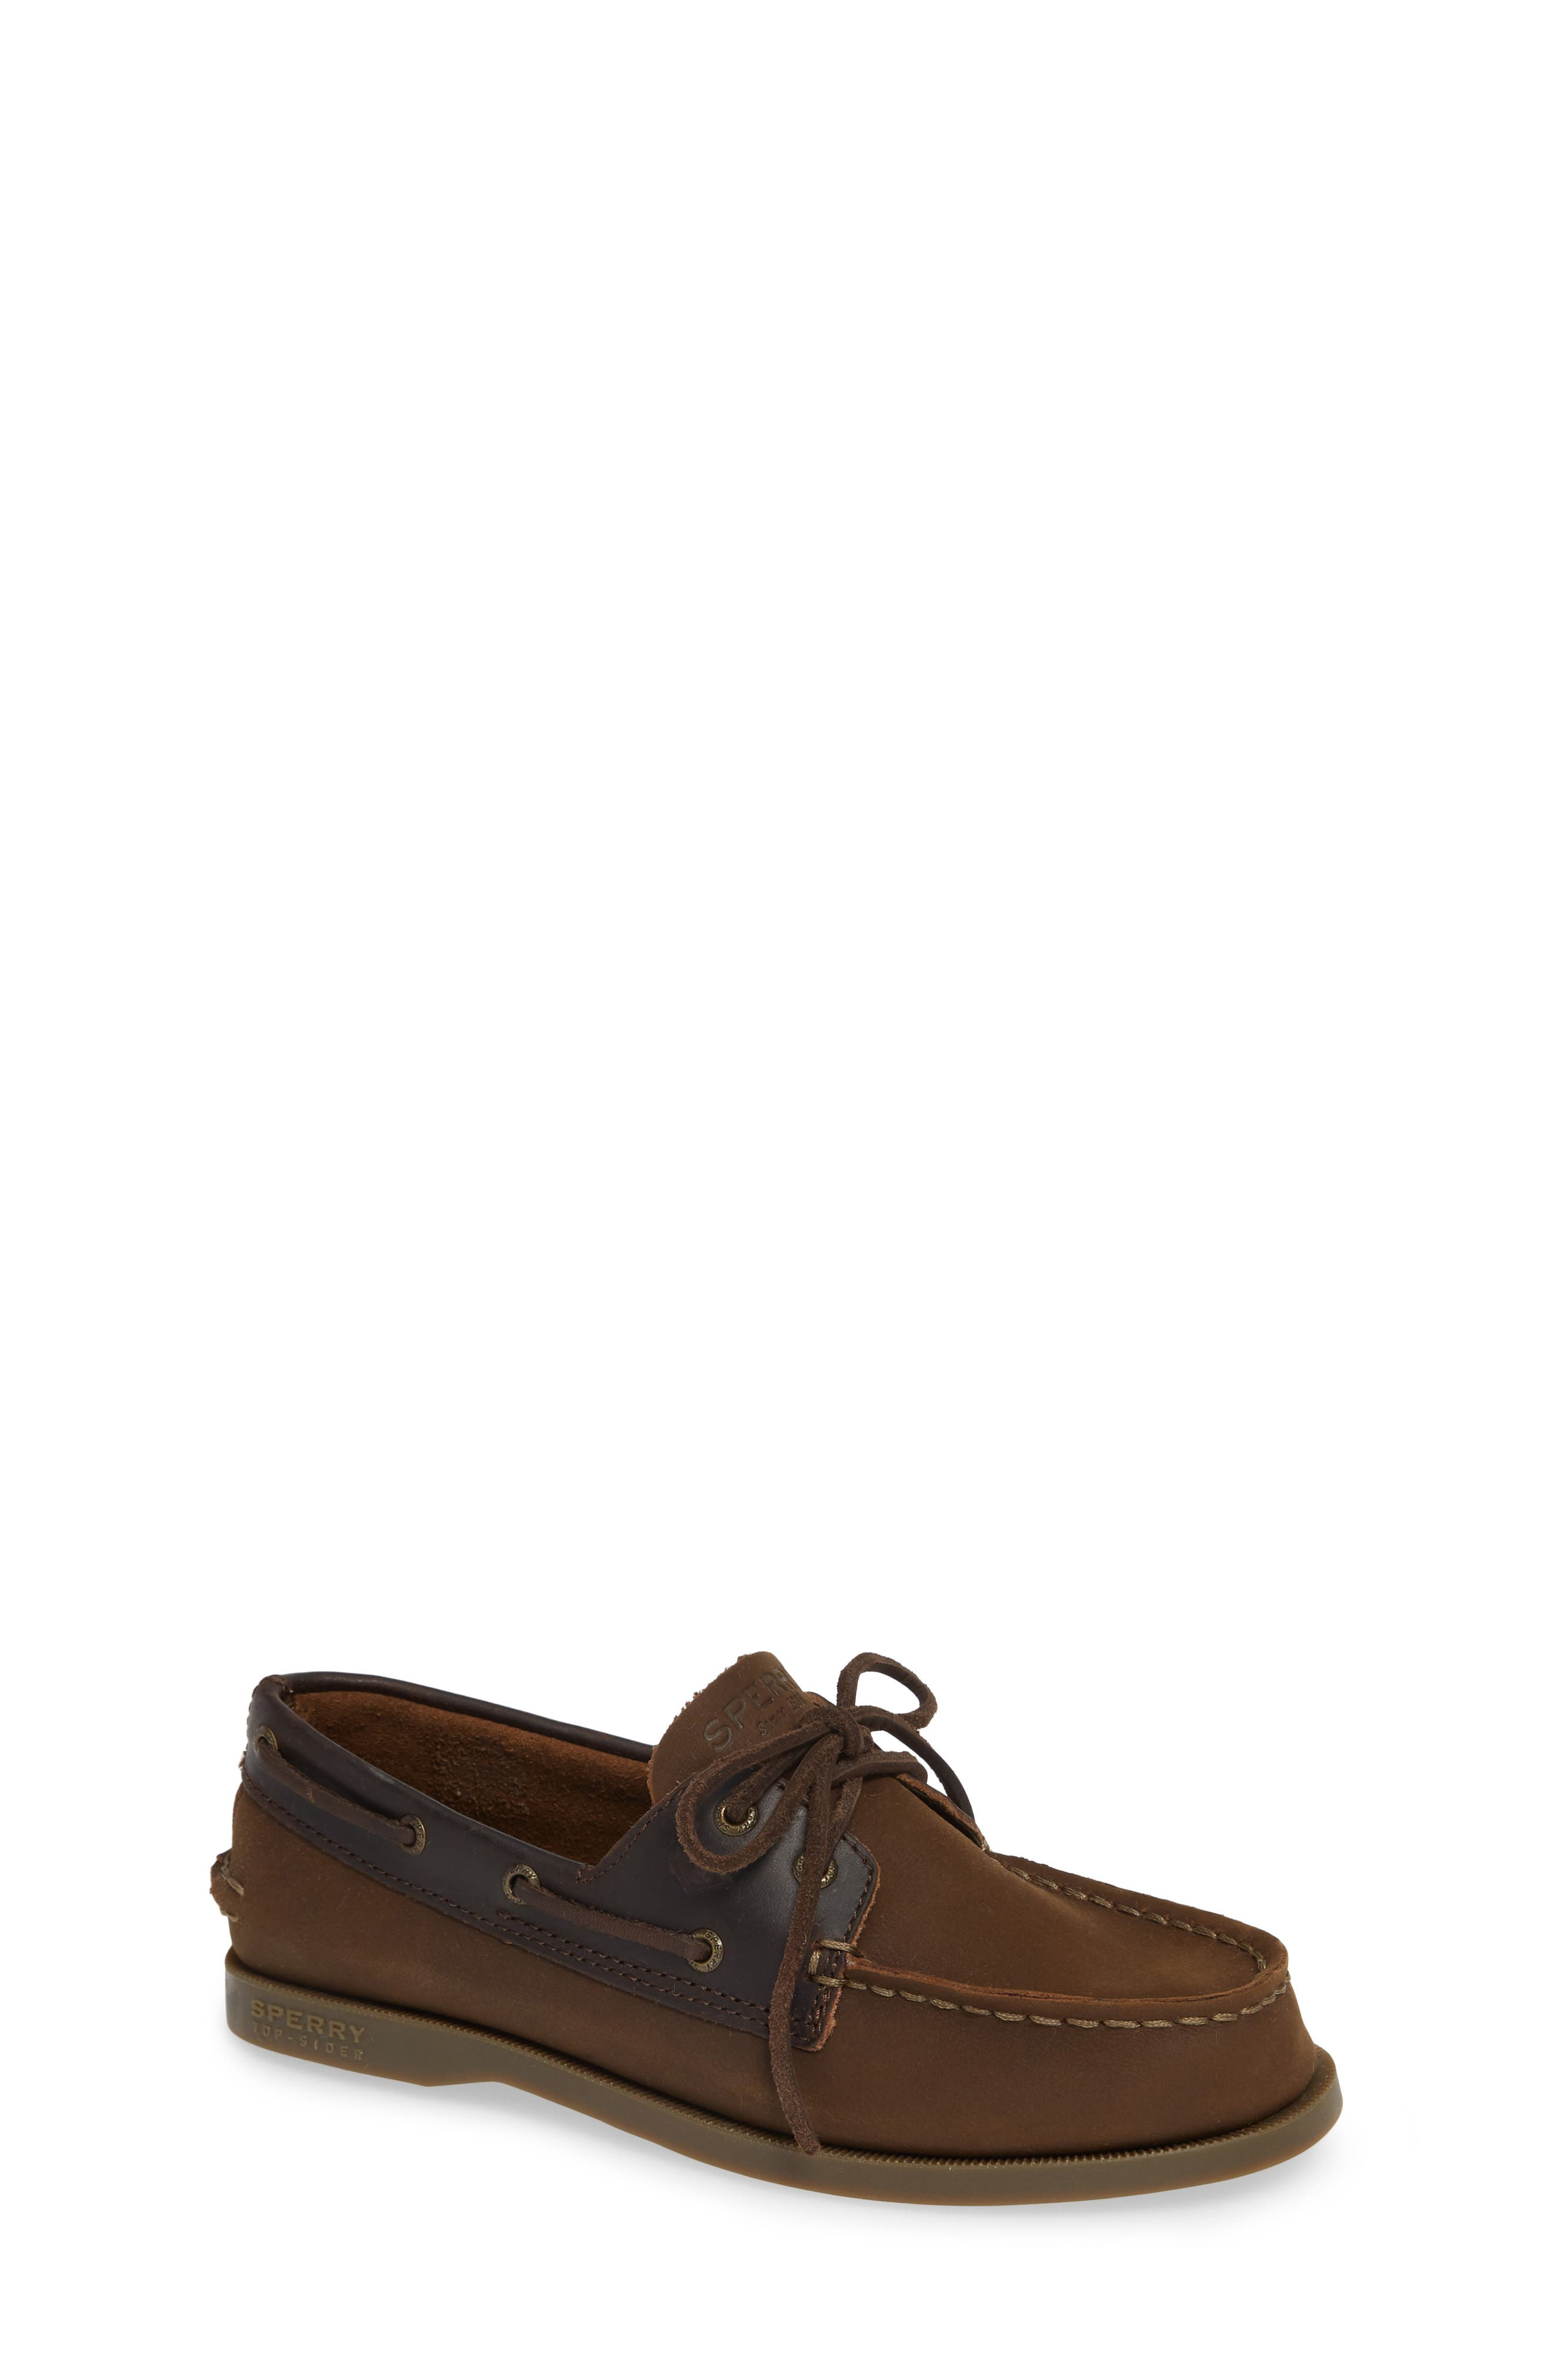 'Authentic Original' Boat Shoe,                             Main thumbnail 1, color,                             BROWN BUCK LEATHER